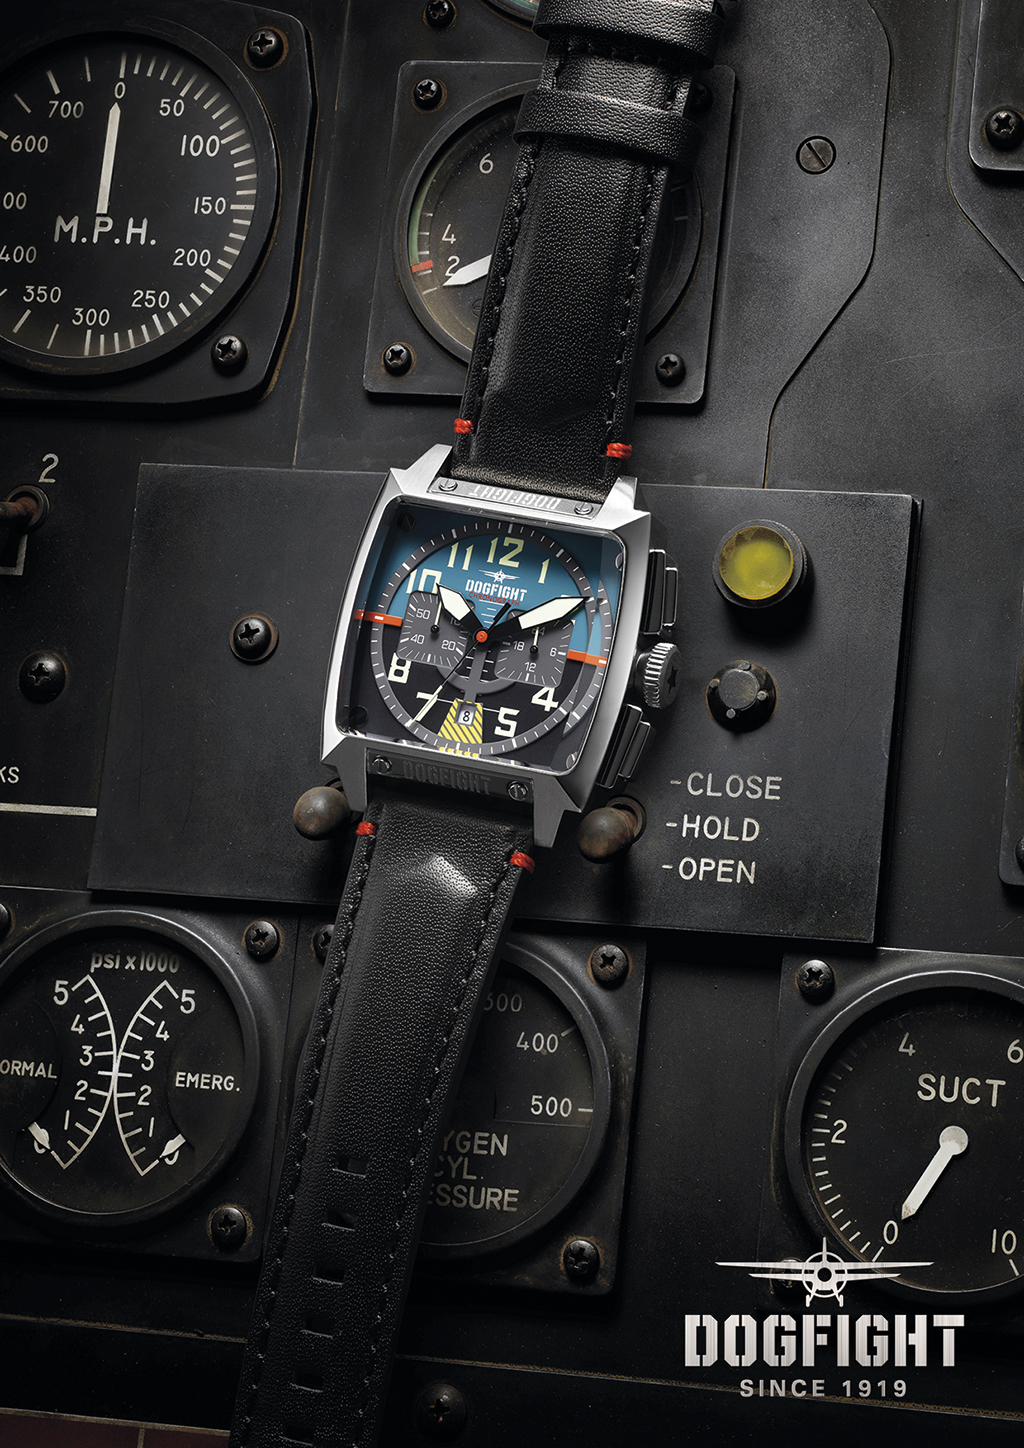 Dogfight's Pilot Watches Have Landed | DA MAN Magazine